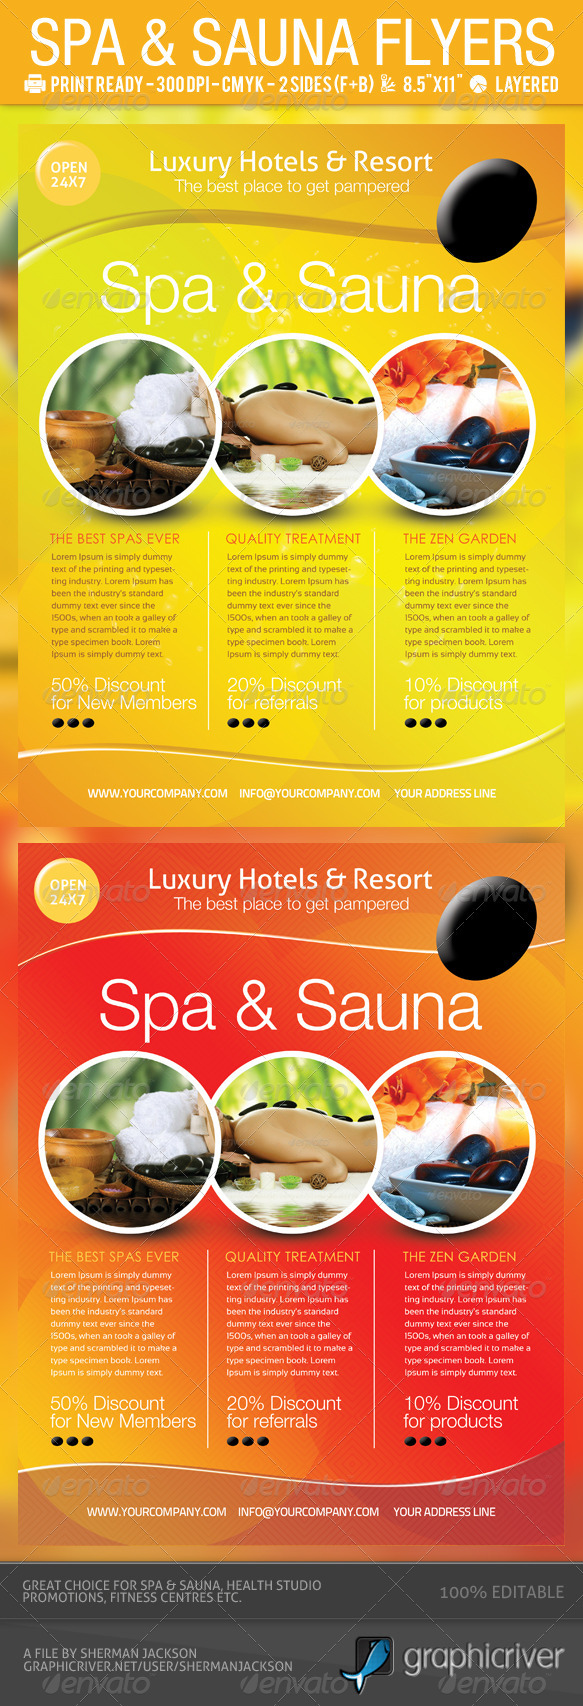 Spa &amp; Sauna Flyers PSD Template - Commerce Flyers